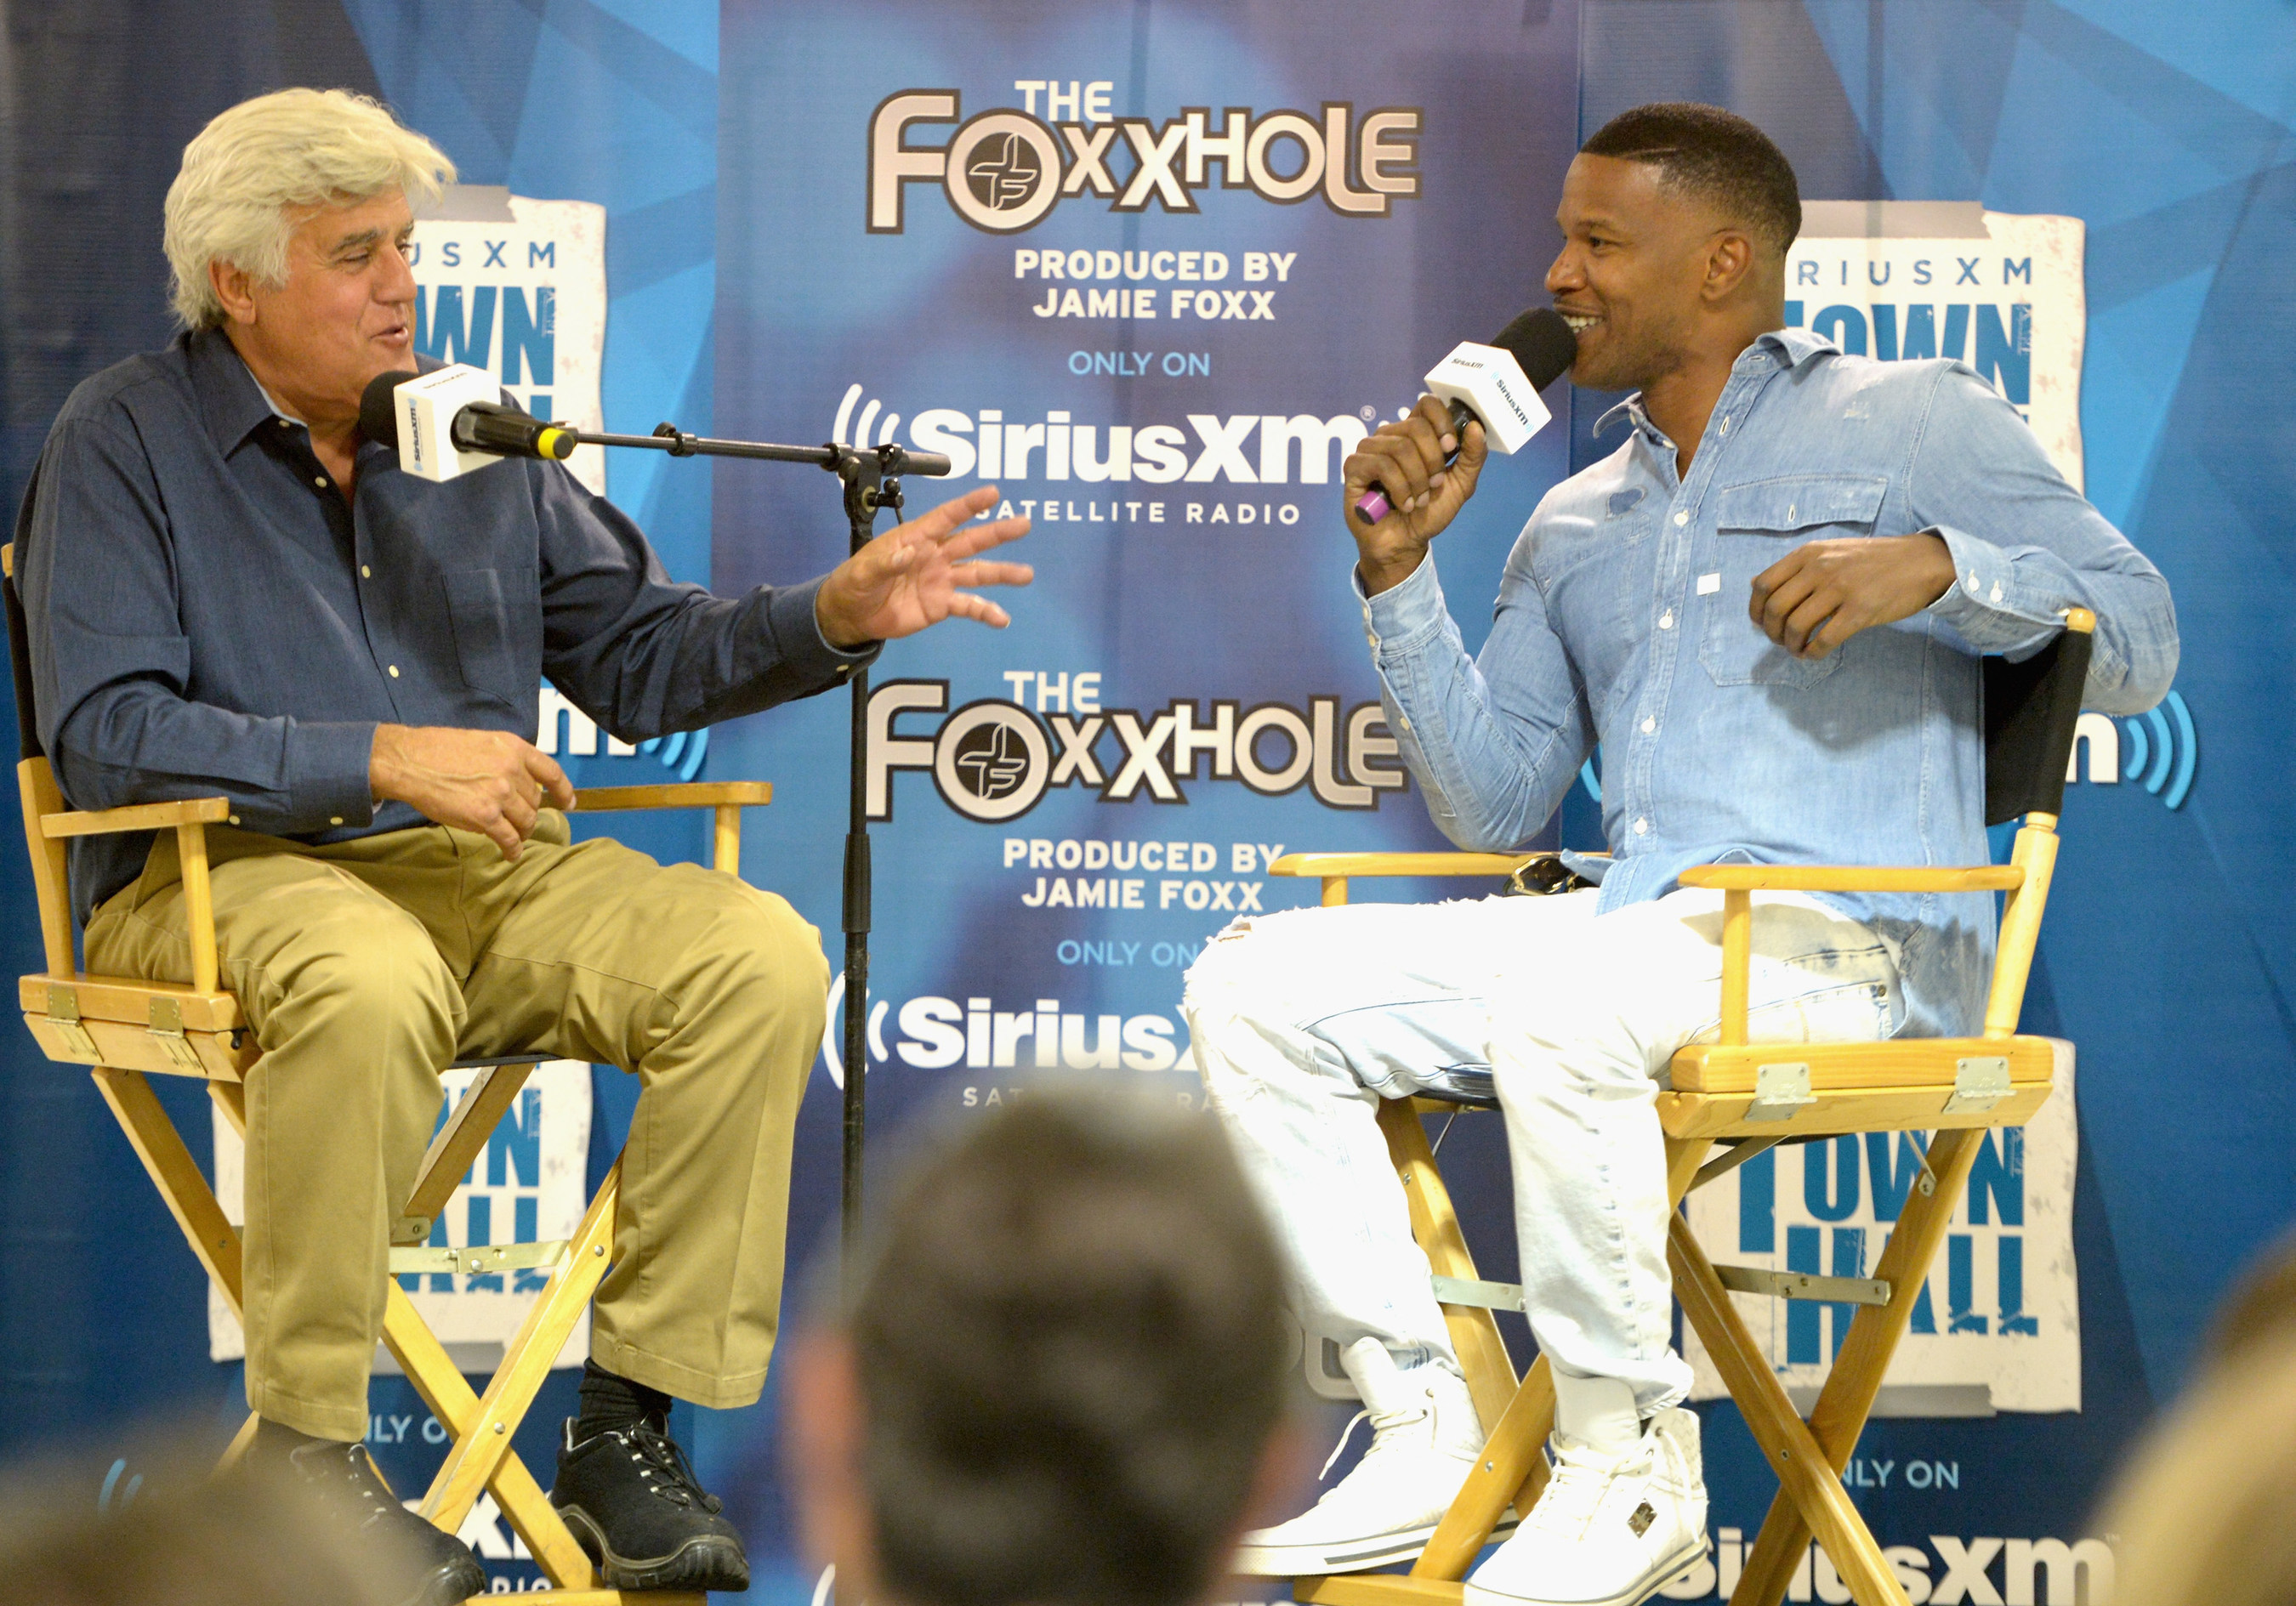 Jay Leno Goes One-on-One with Jamie Foxx for In-Depth Q&A Session as Part of SiriusXM's Town Hall Series